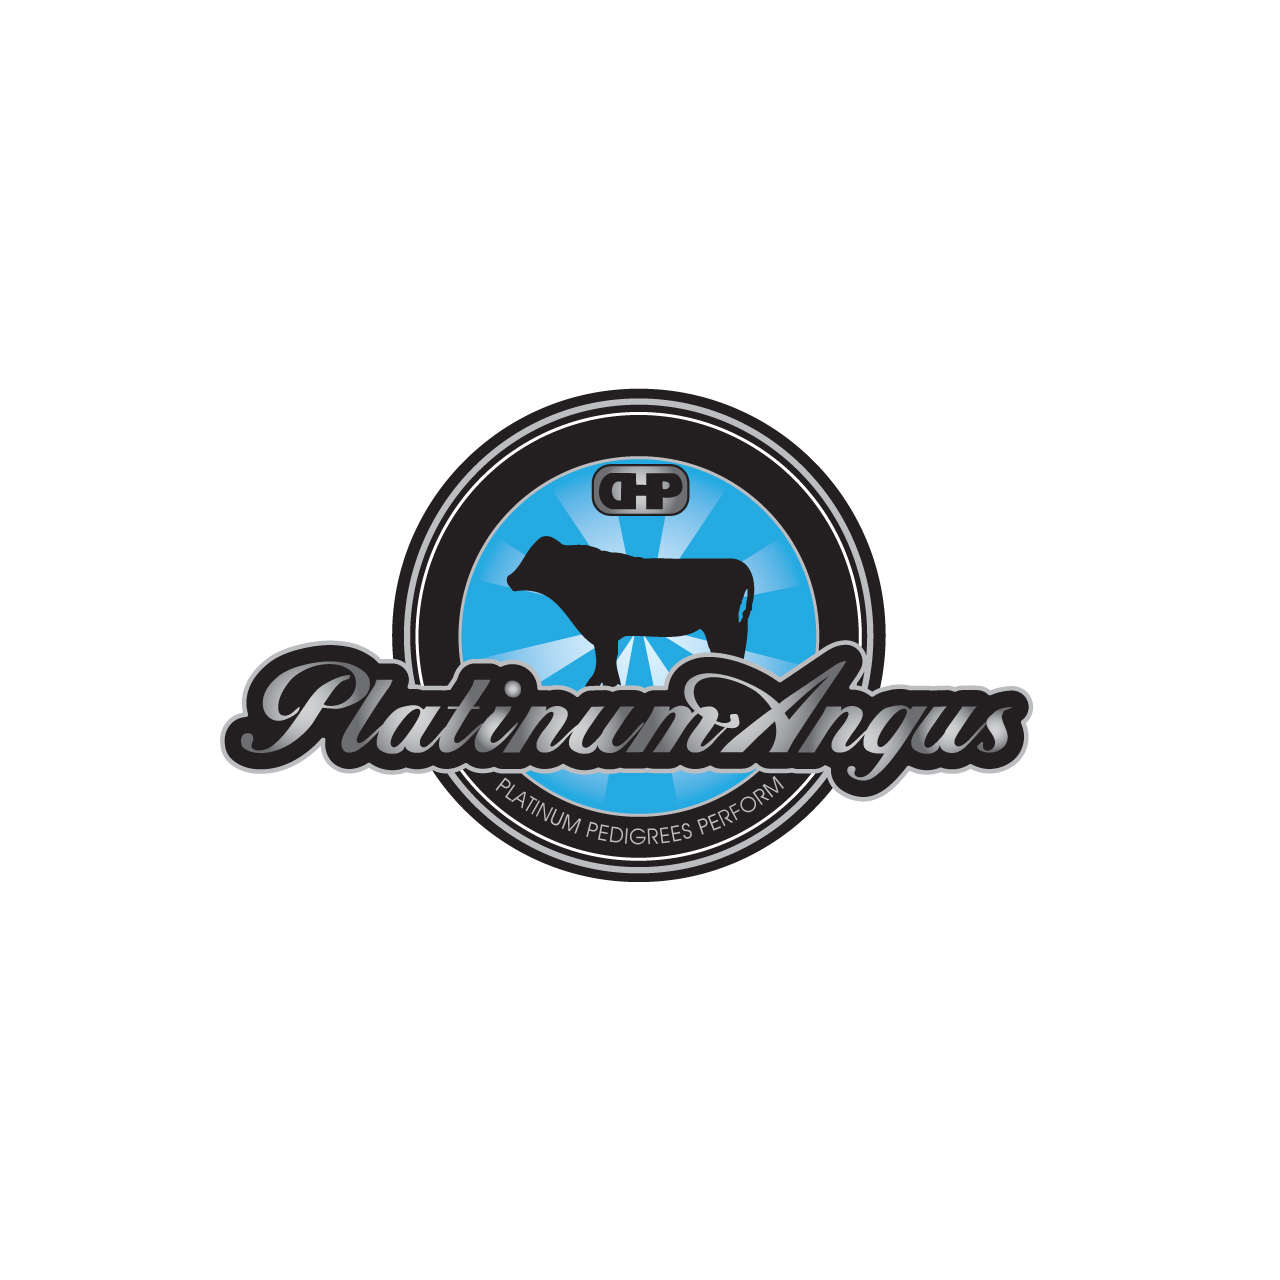 Logo Design by Private User - Entry No. 80 in the Logo Design Contest Platinum Angus Cattle.